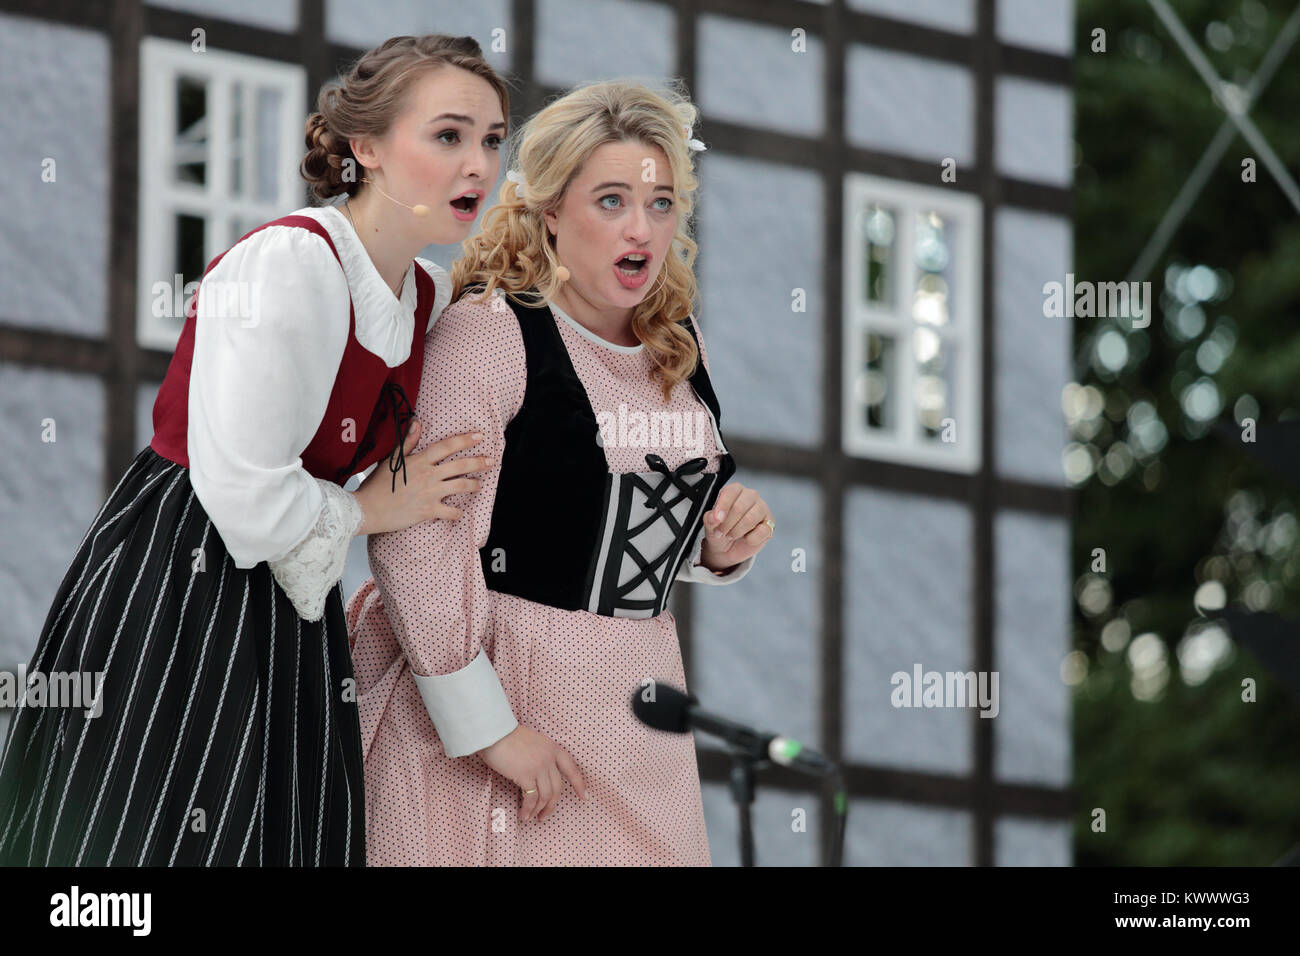 St. Petersburg, Russia - July 19, 2017: Micaela di Catalano (right) and Olga Cheremnykh in the opera The Marksman - Stock Image